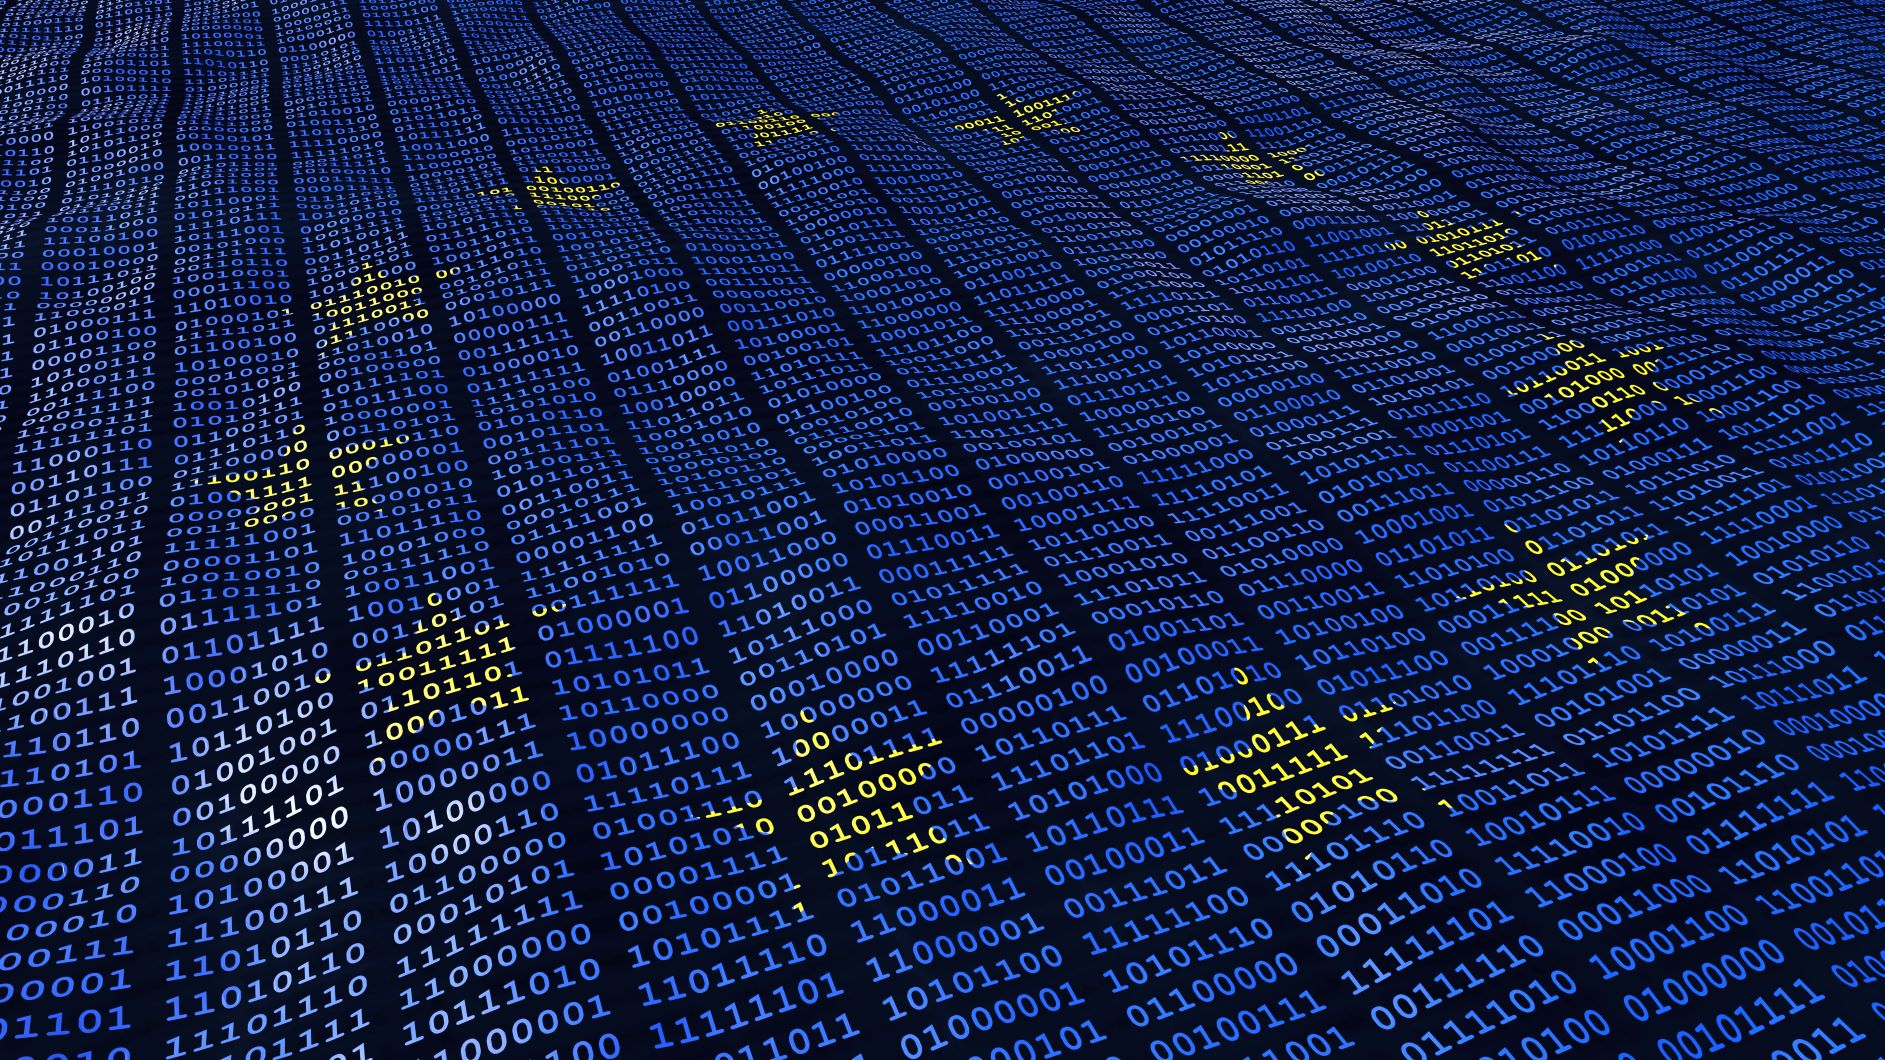 EU's digital vision in the era of dataism